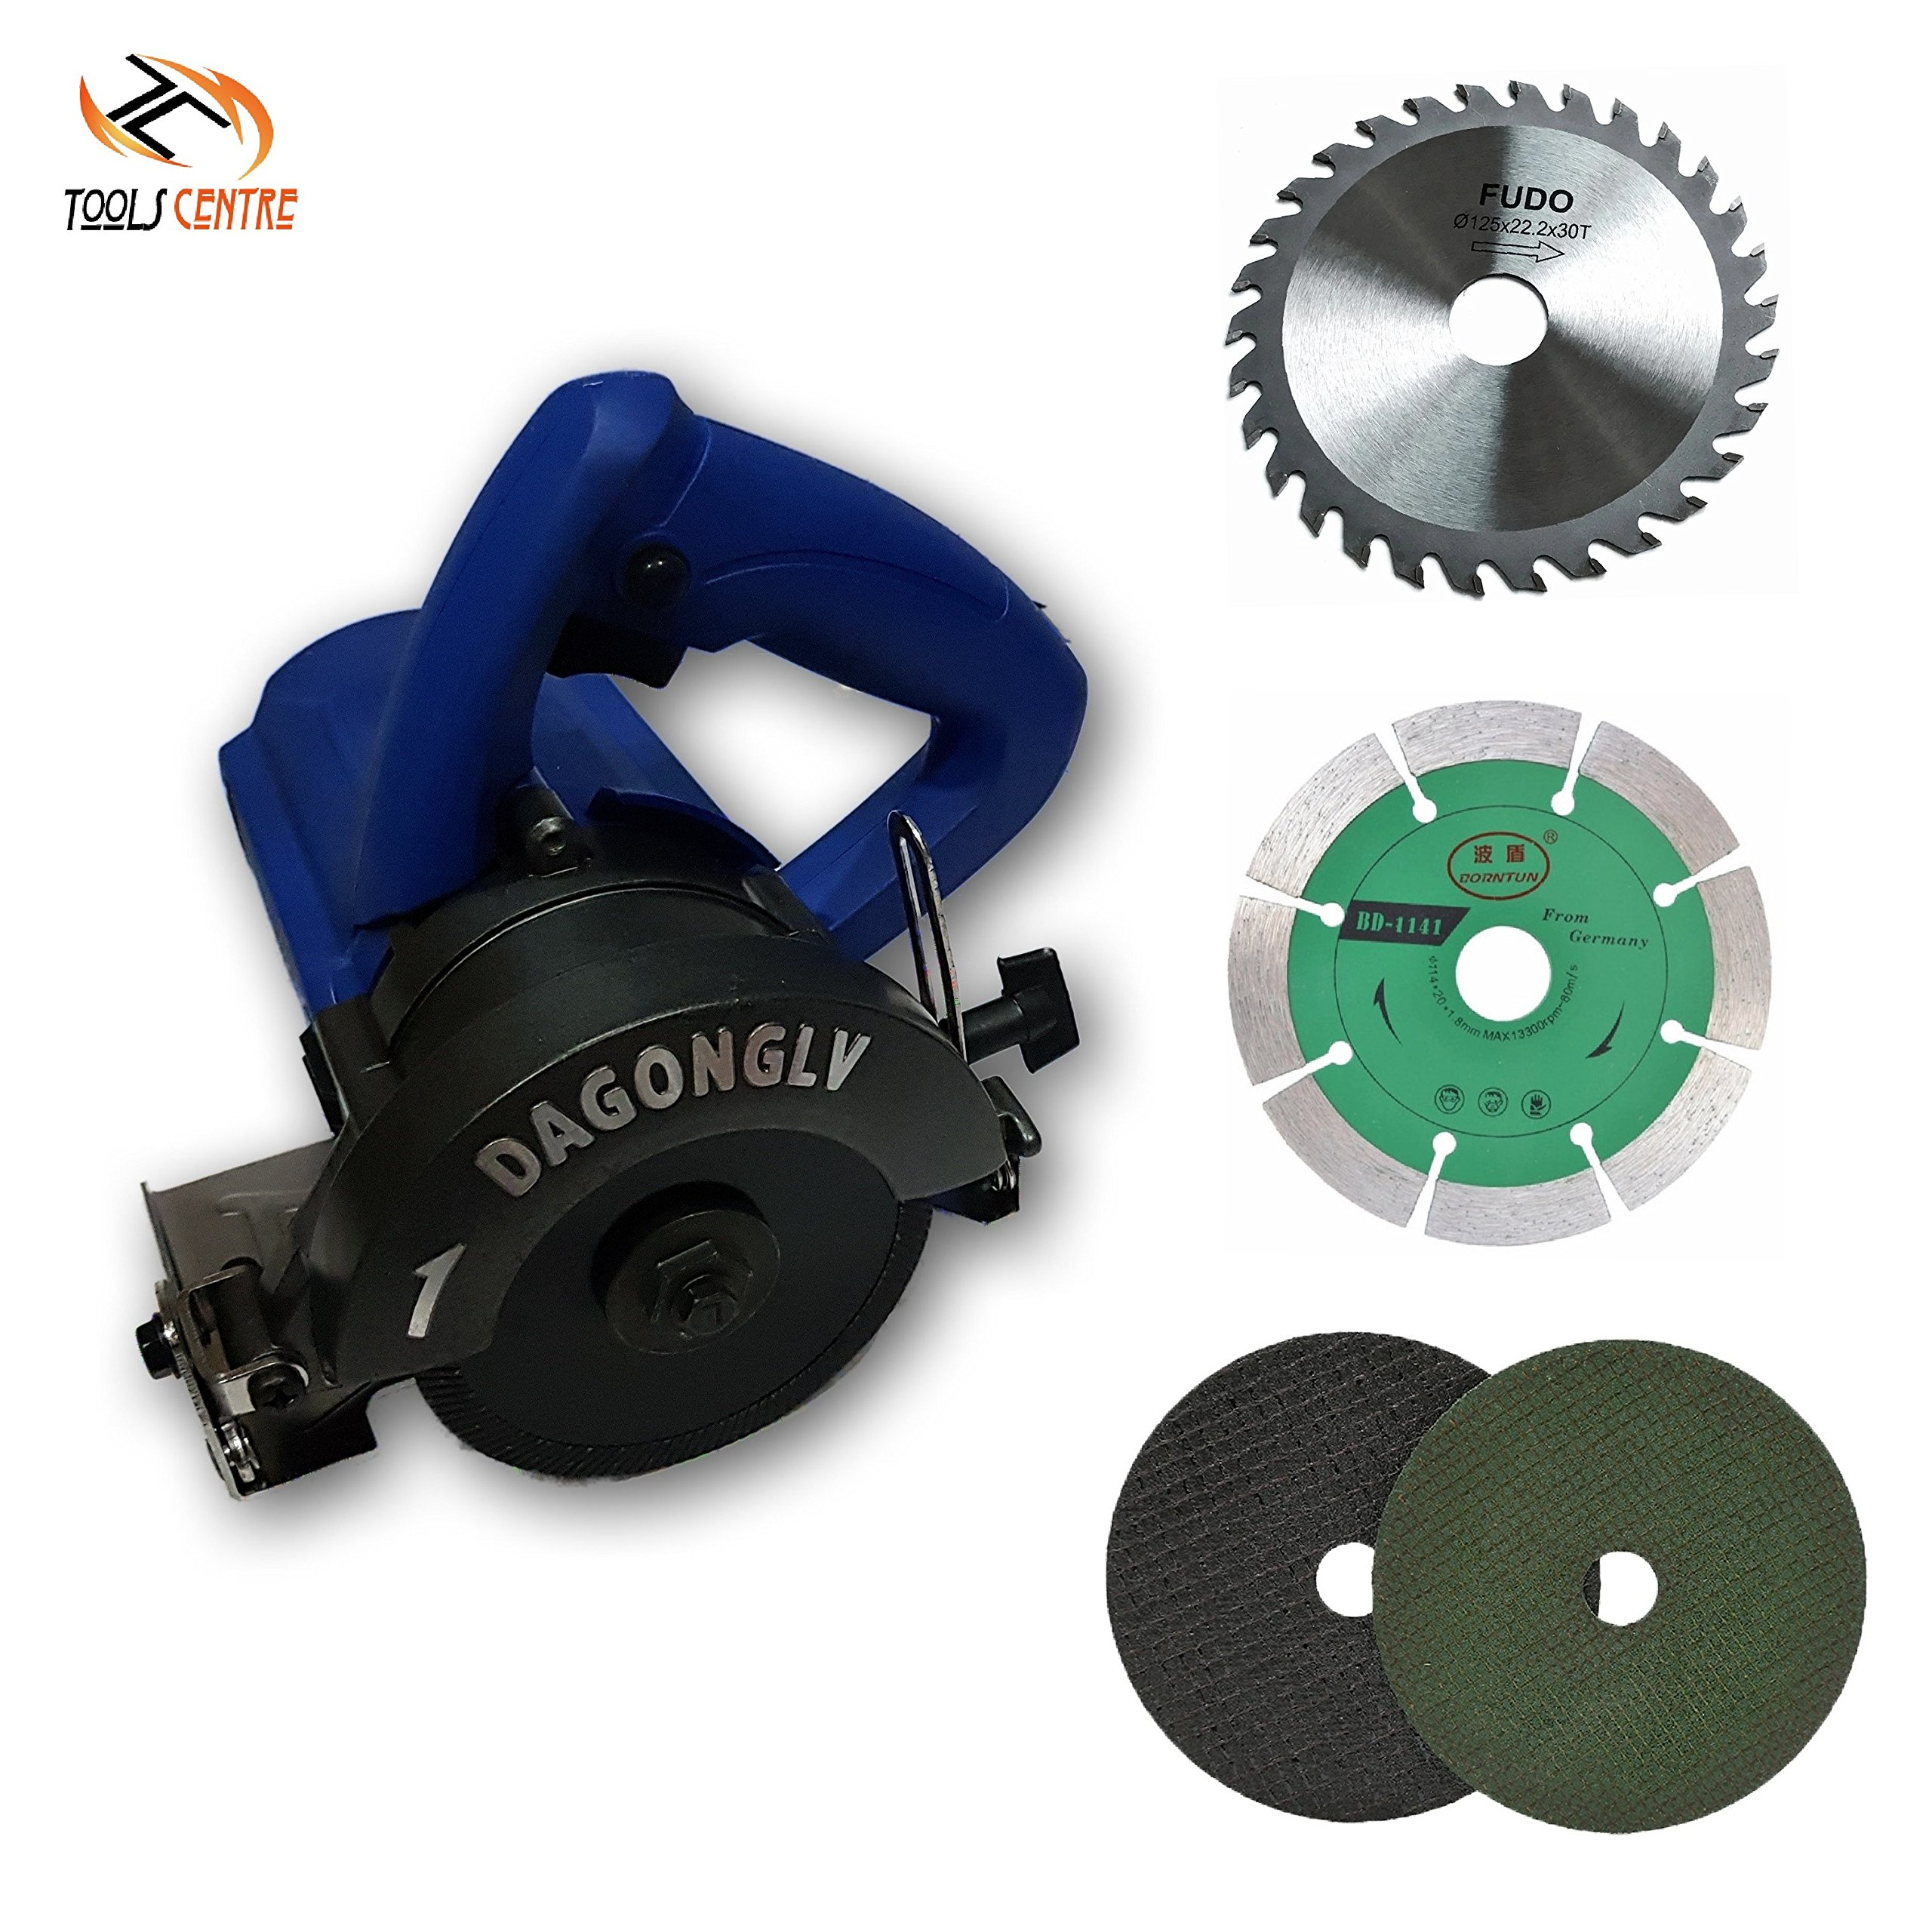 Tools Centre Industrial (125mm) 5'' Tile/Wood Cutter Machine With Free TCT/Marble/Metal Cutting Blades.